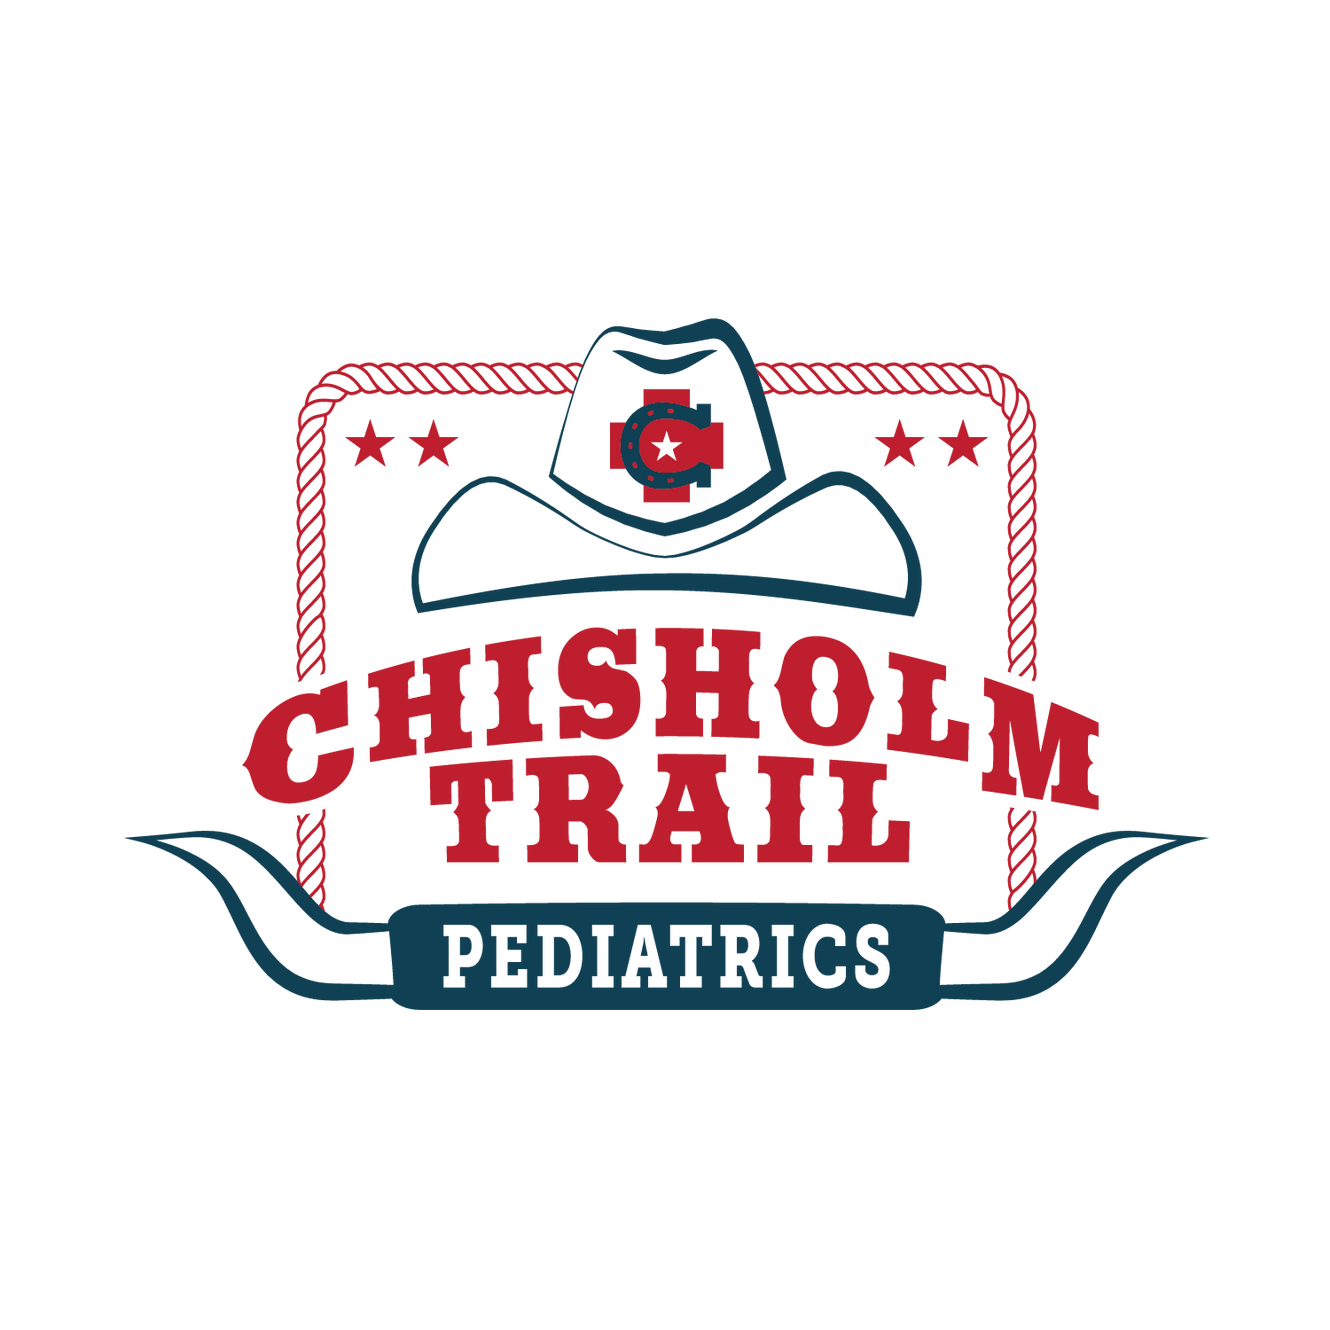 Chisholm Trail Pediatrics